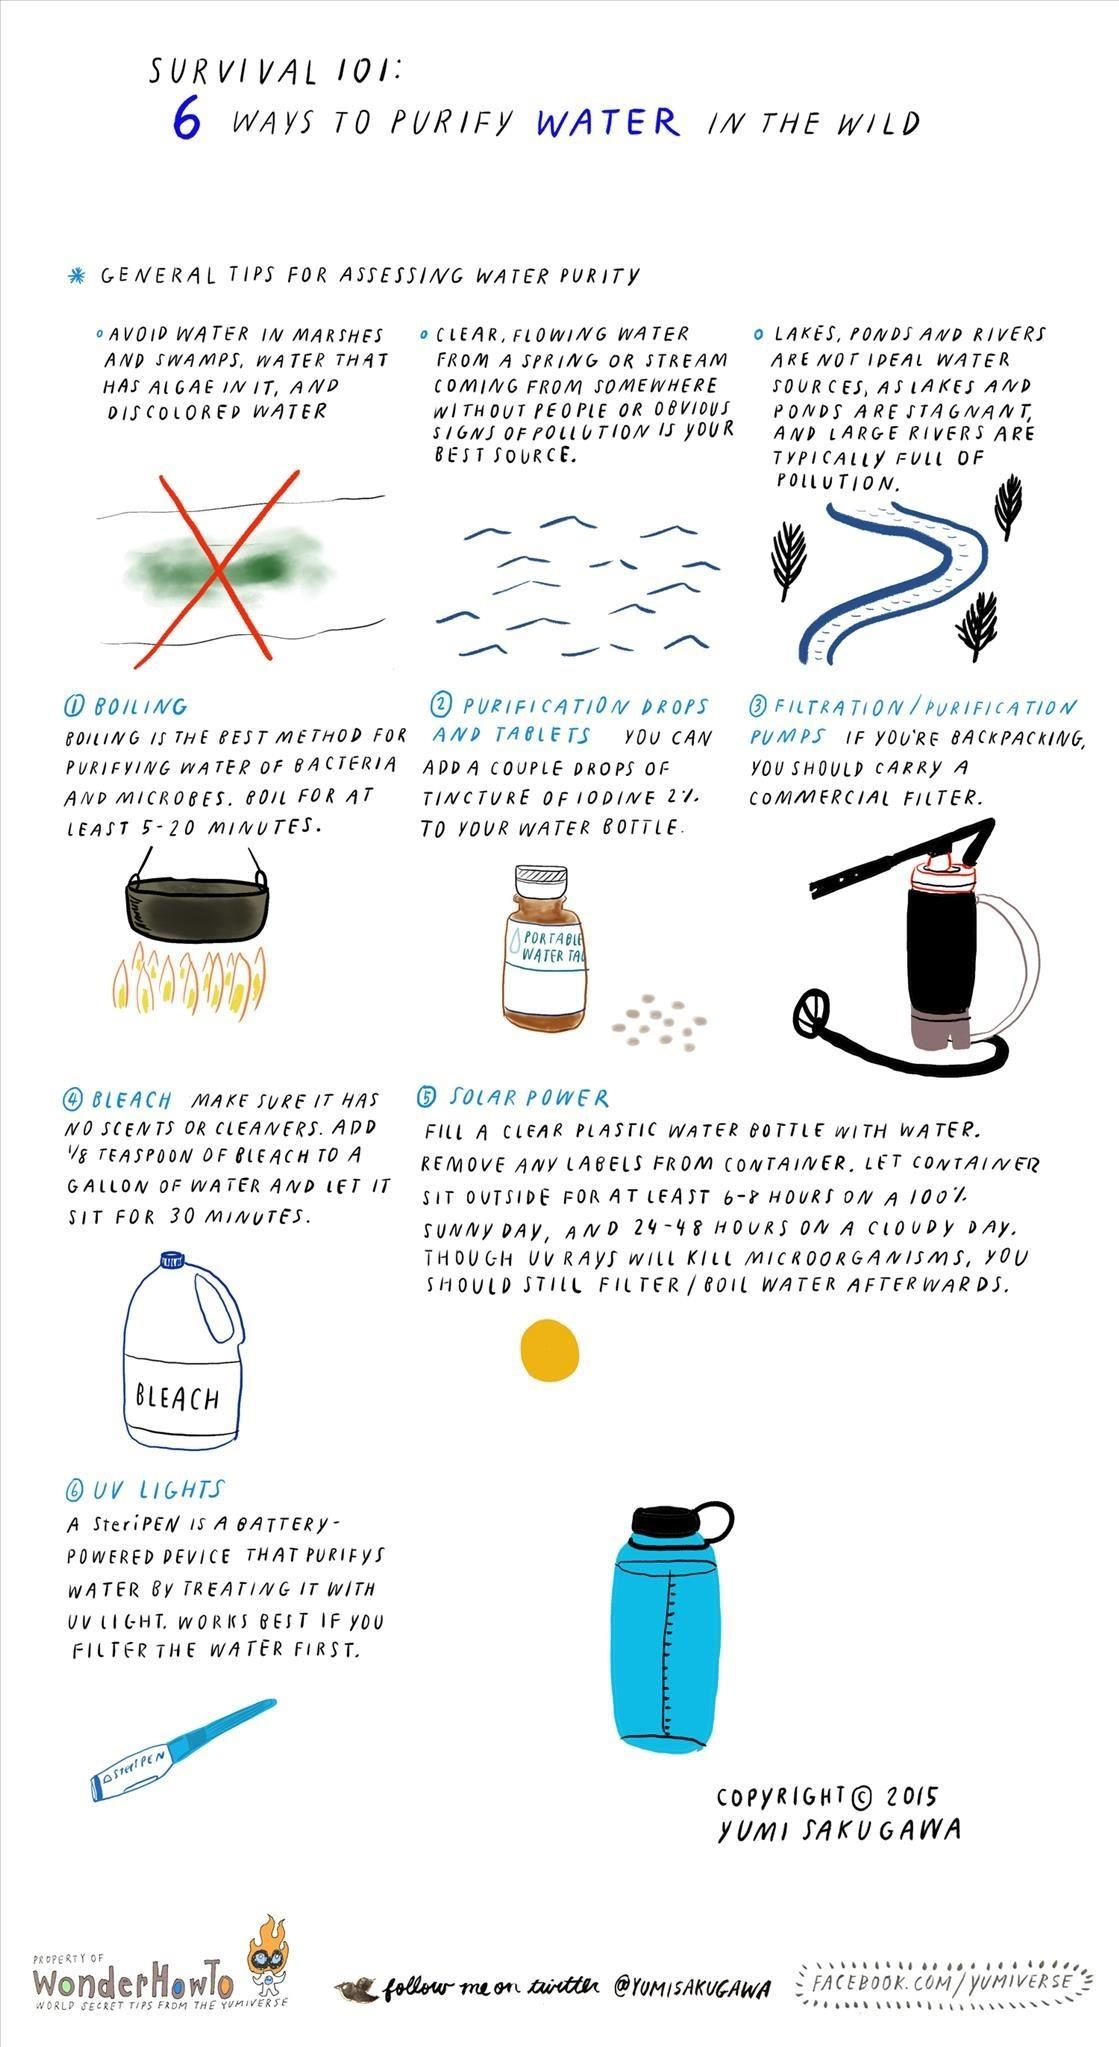 Survival 101: 6 Ways to Purify Water in the Wild